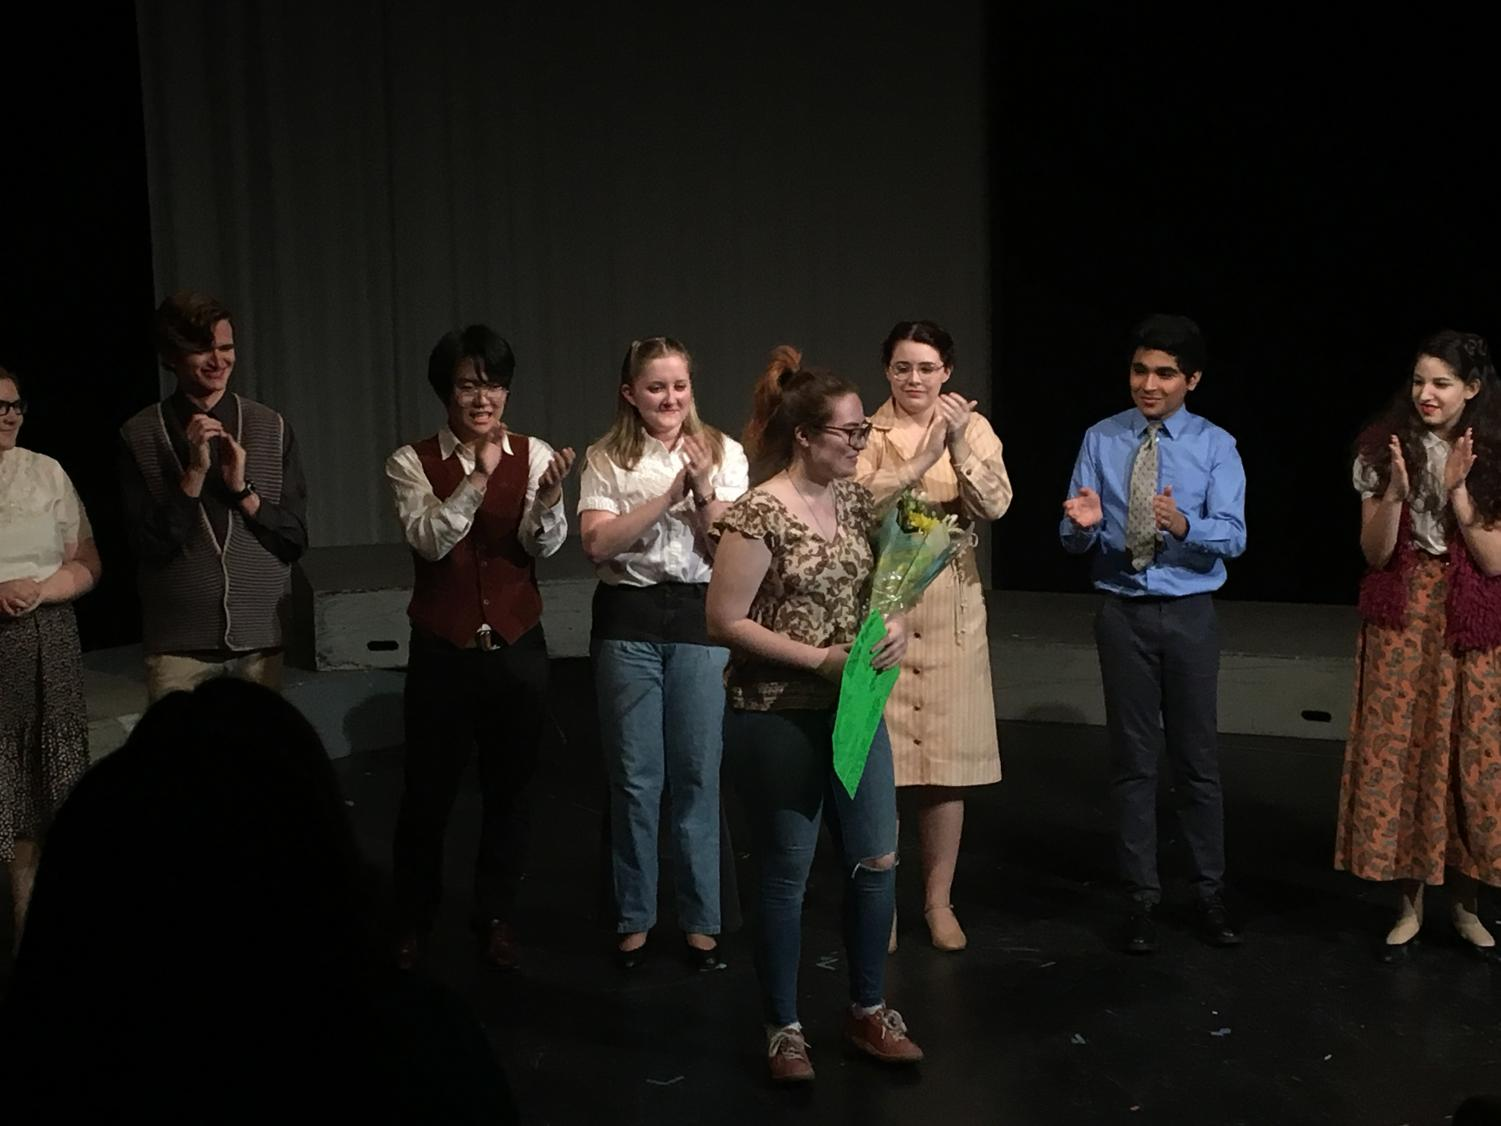 The cast of 'Missing Piece' assembles on stage with their director.